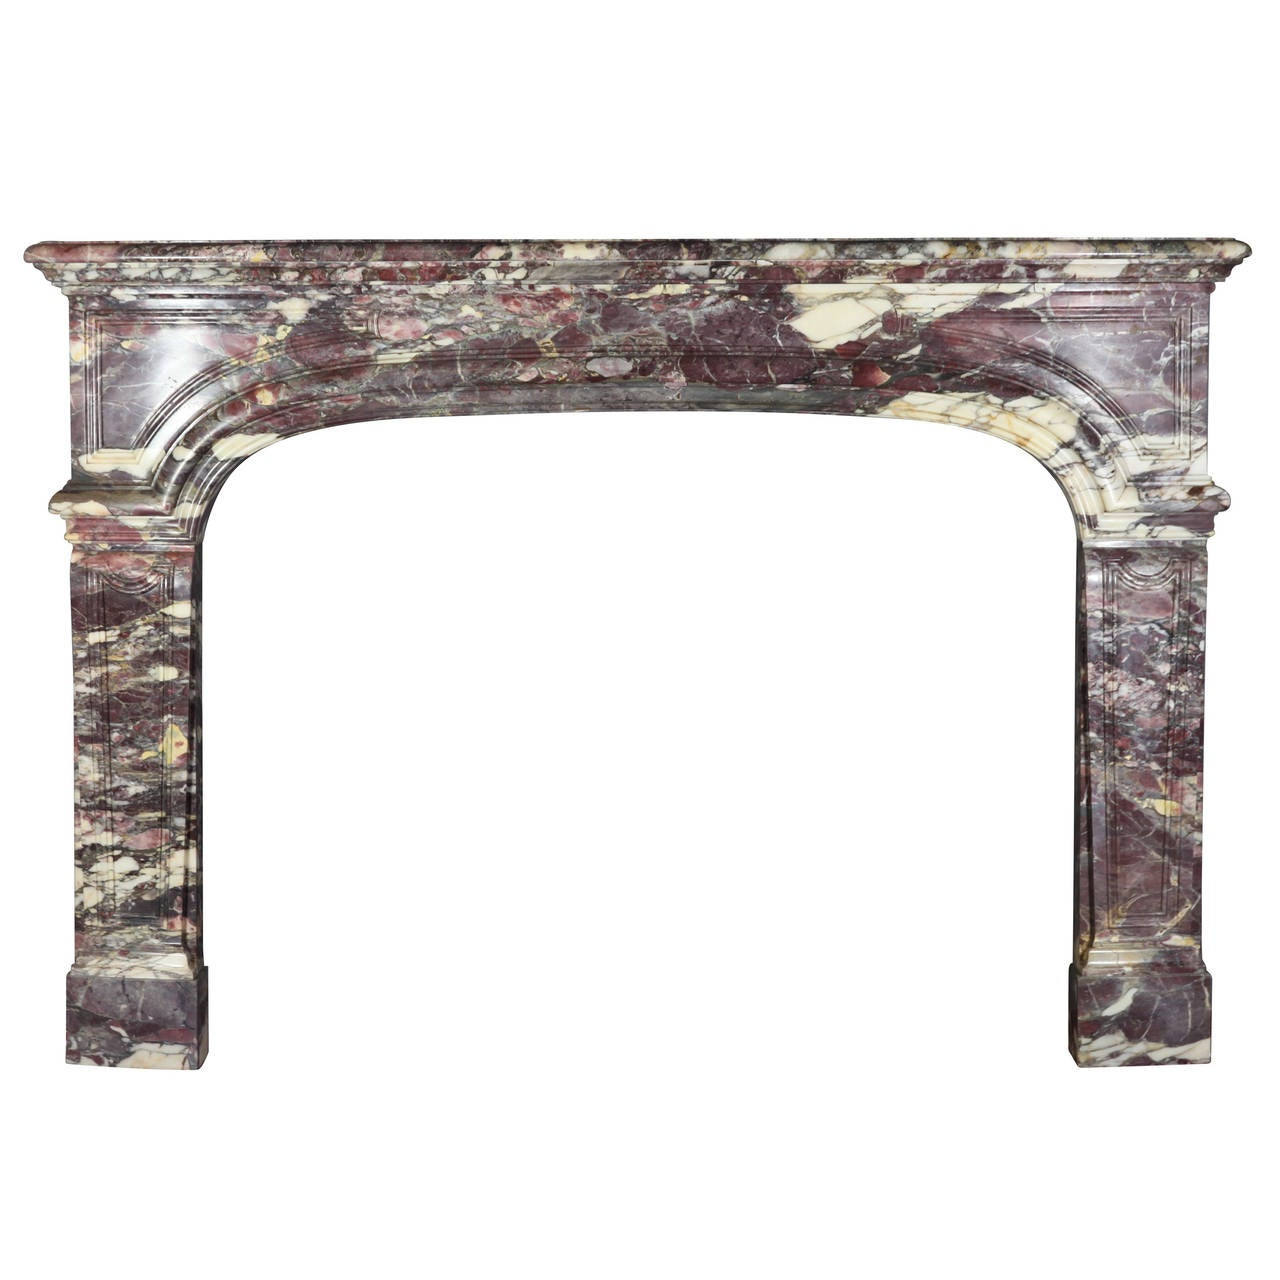 Antique fireplace mantels for sale - 18th Century Marble Antique Fireplace Mantel In Royal Breche Violet Marble 1